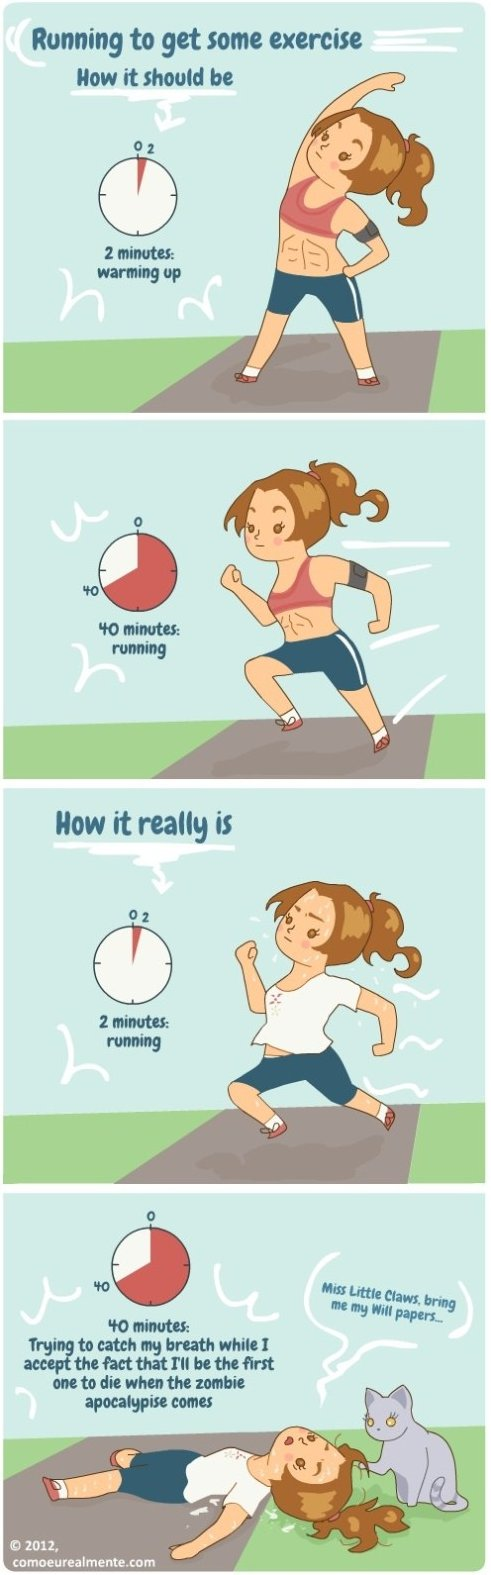 Running, How It Should Be